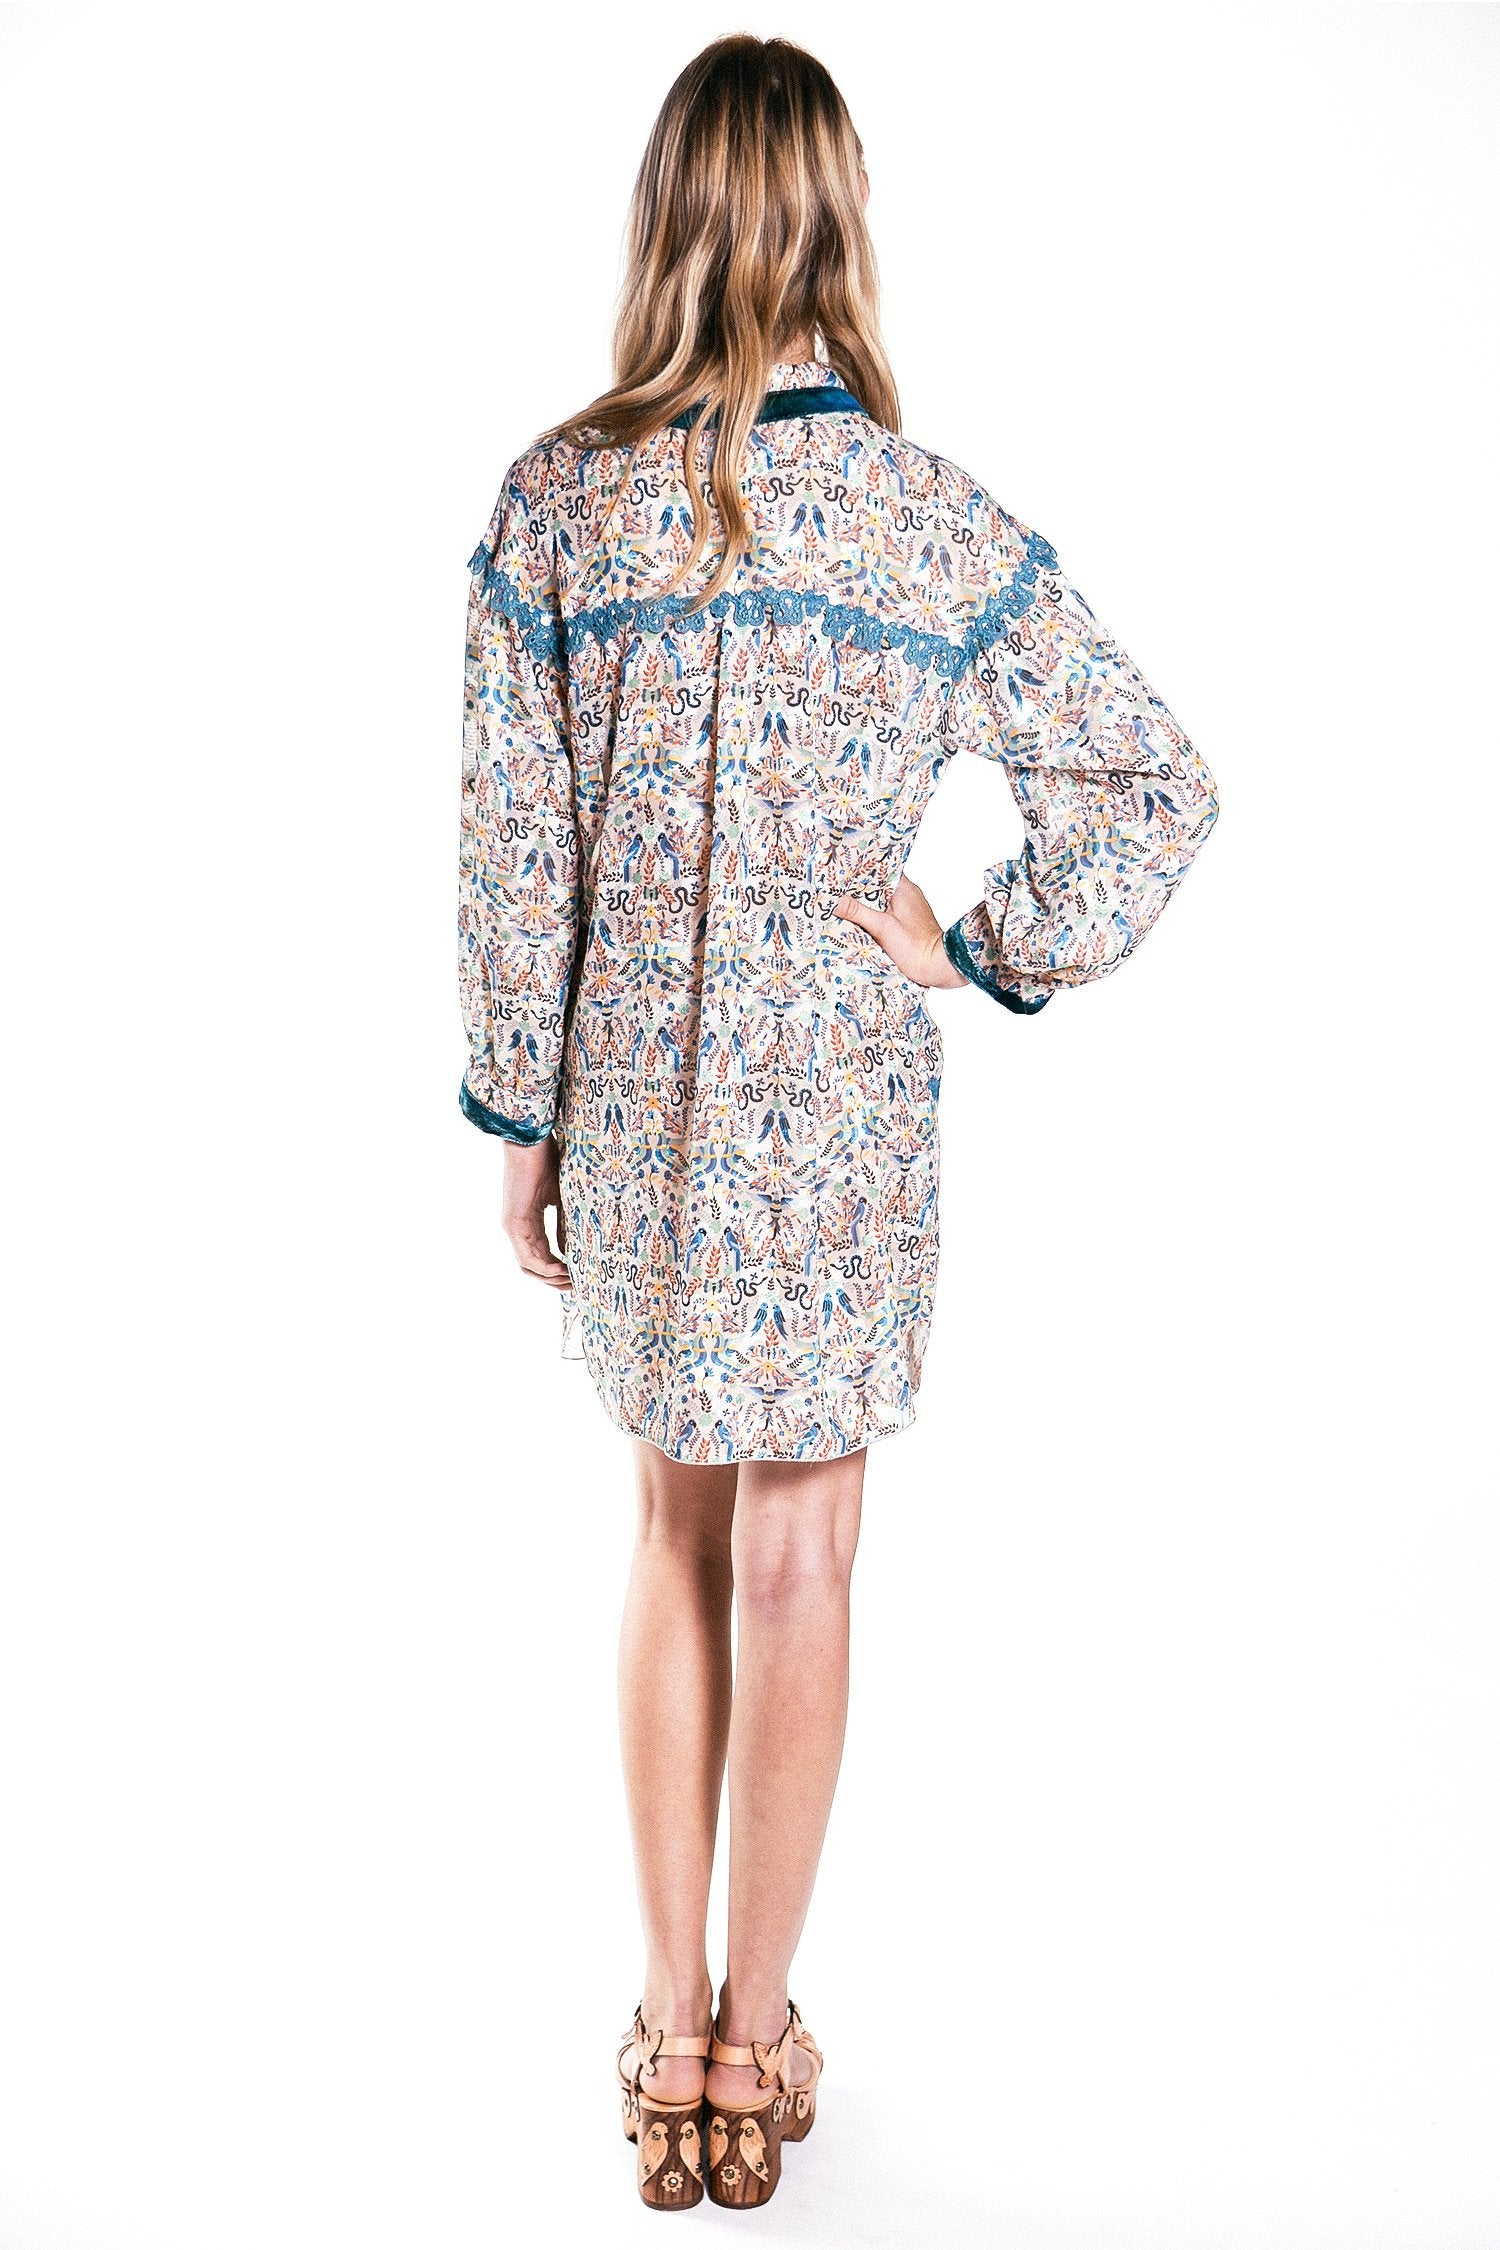 Garden of Eden Clipped Jacquard Shirt Dress - Anna Sui